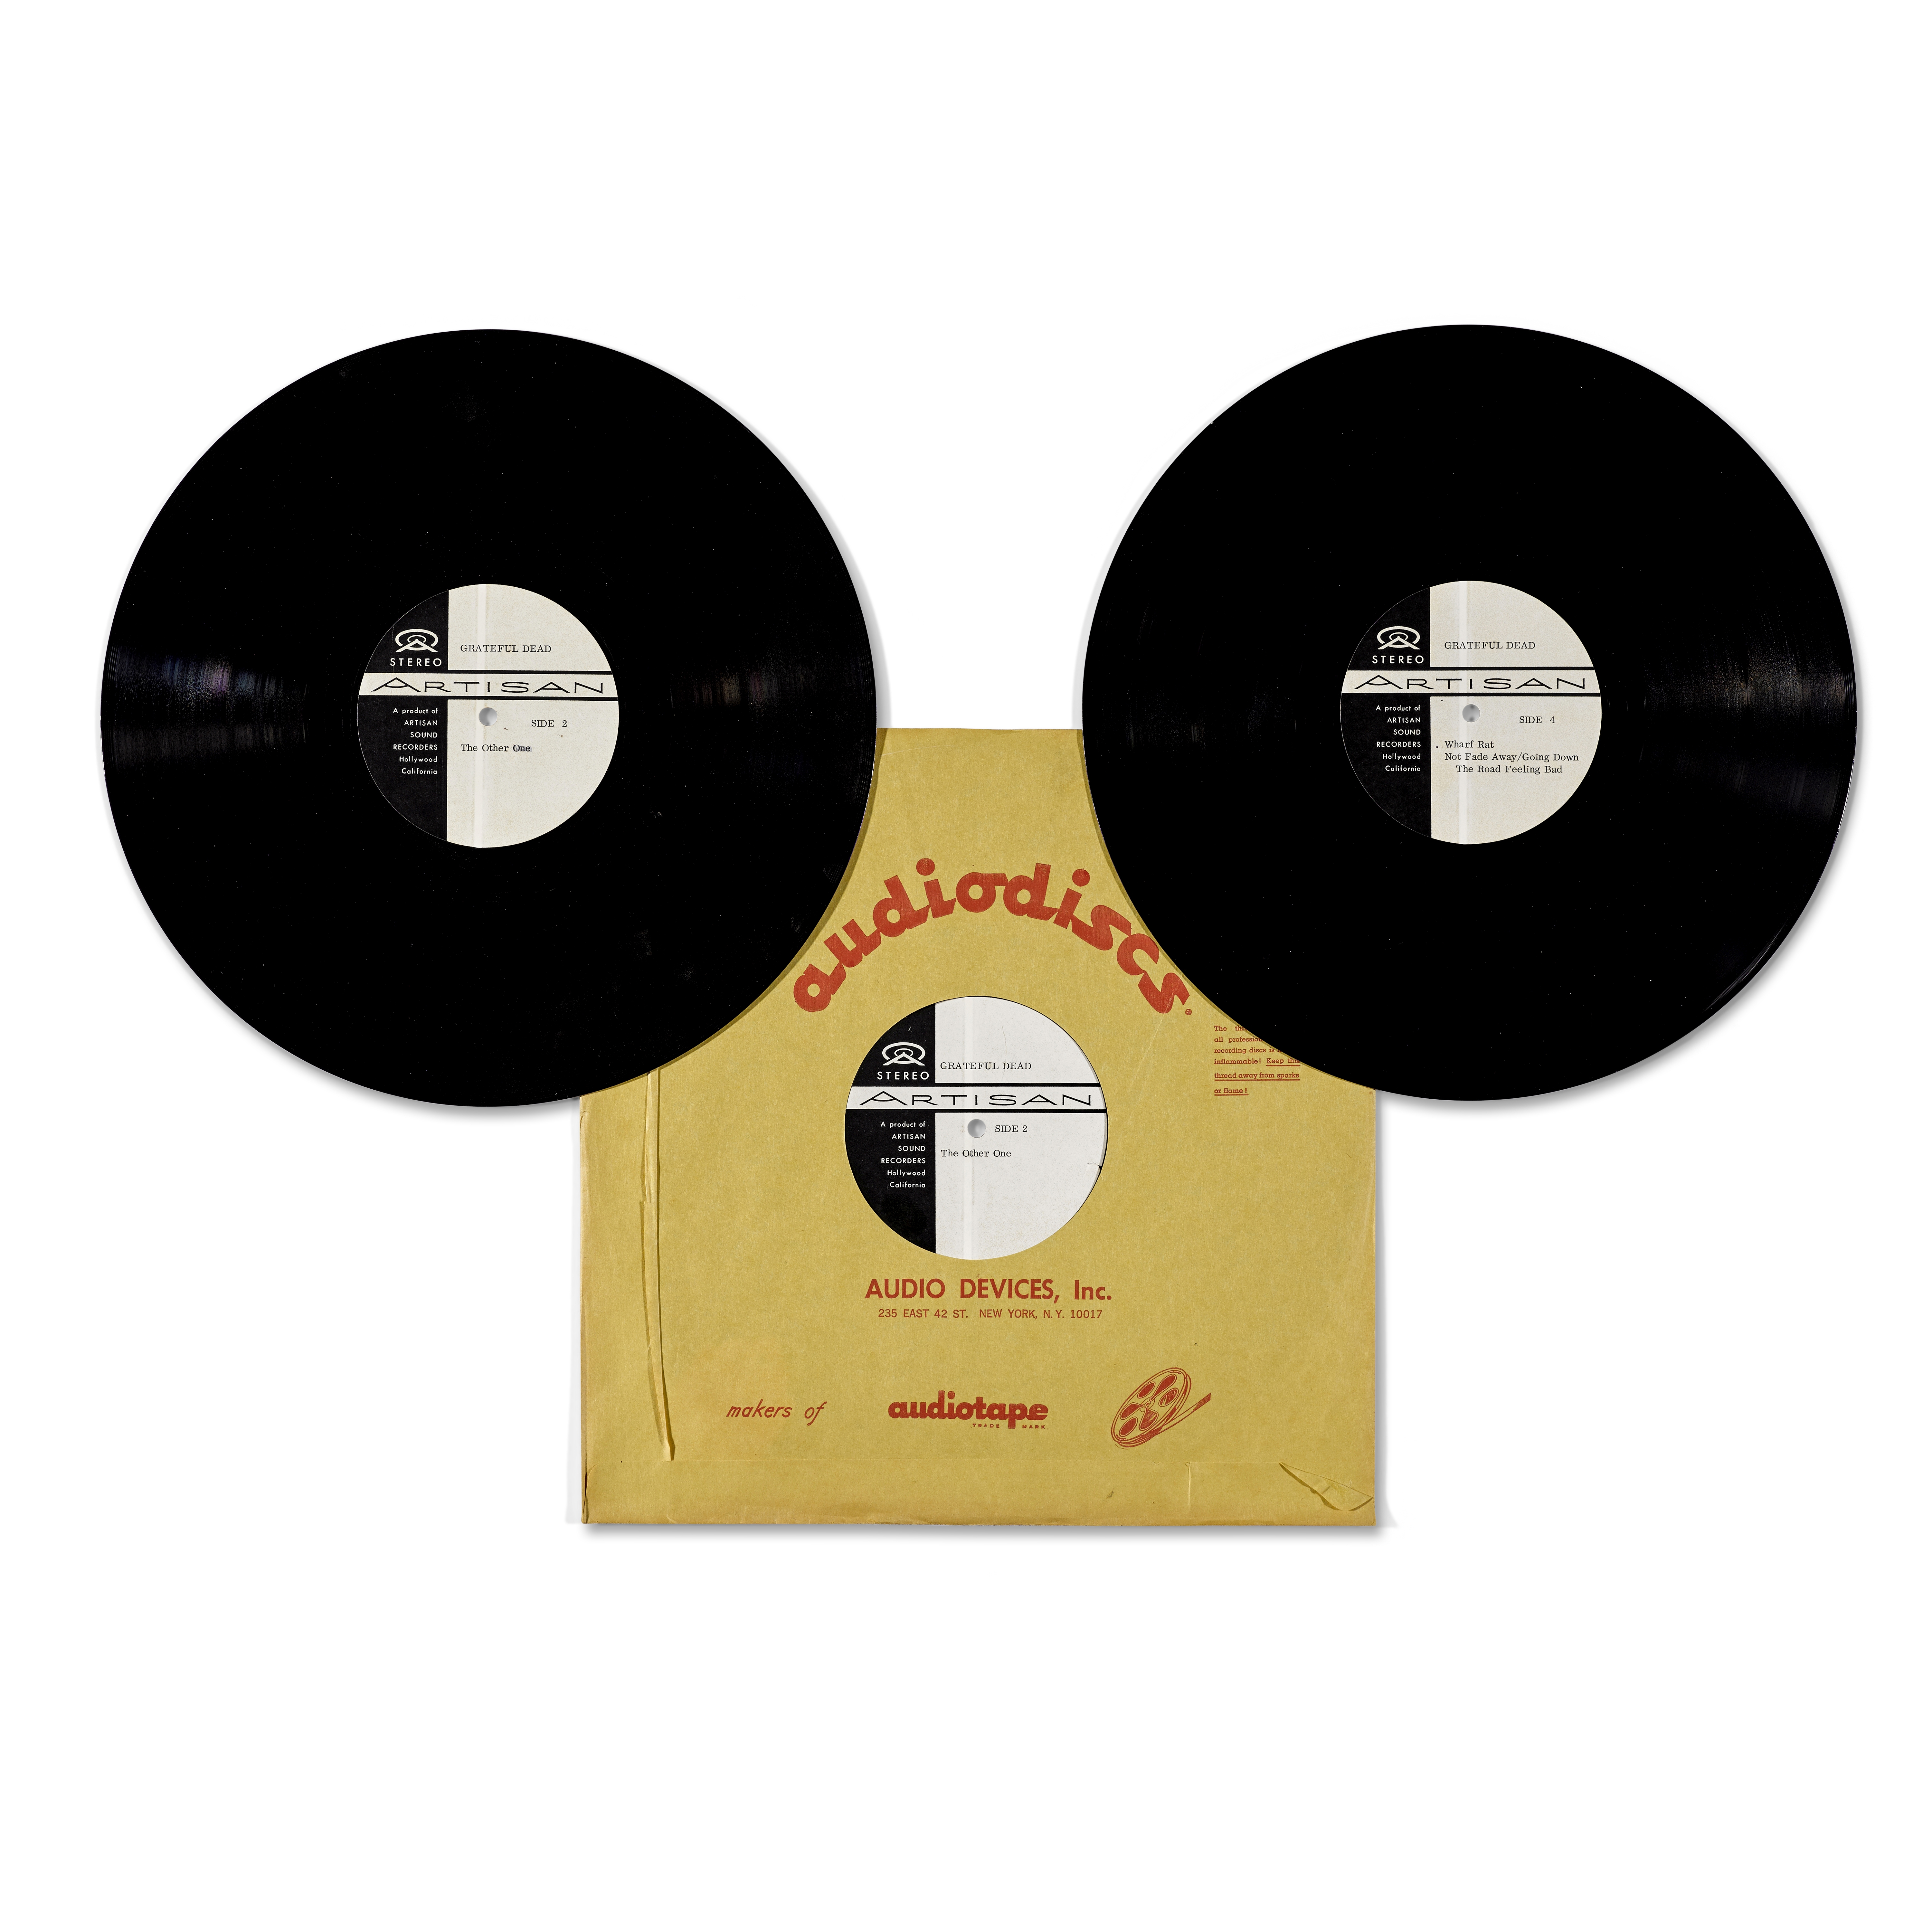 THREE JERRY GARCIA ACETATE RECORDINGS AND TWO TEST PRESSINGS OF THE LIVE DOUBLE ALBUM GRATEFUL DE... - Image 4 of 5